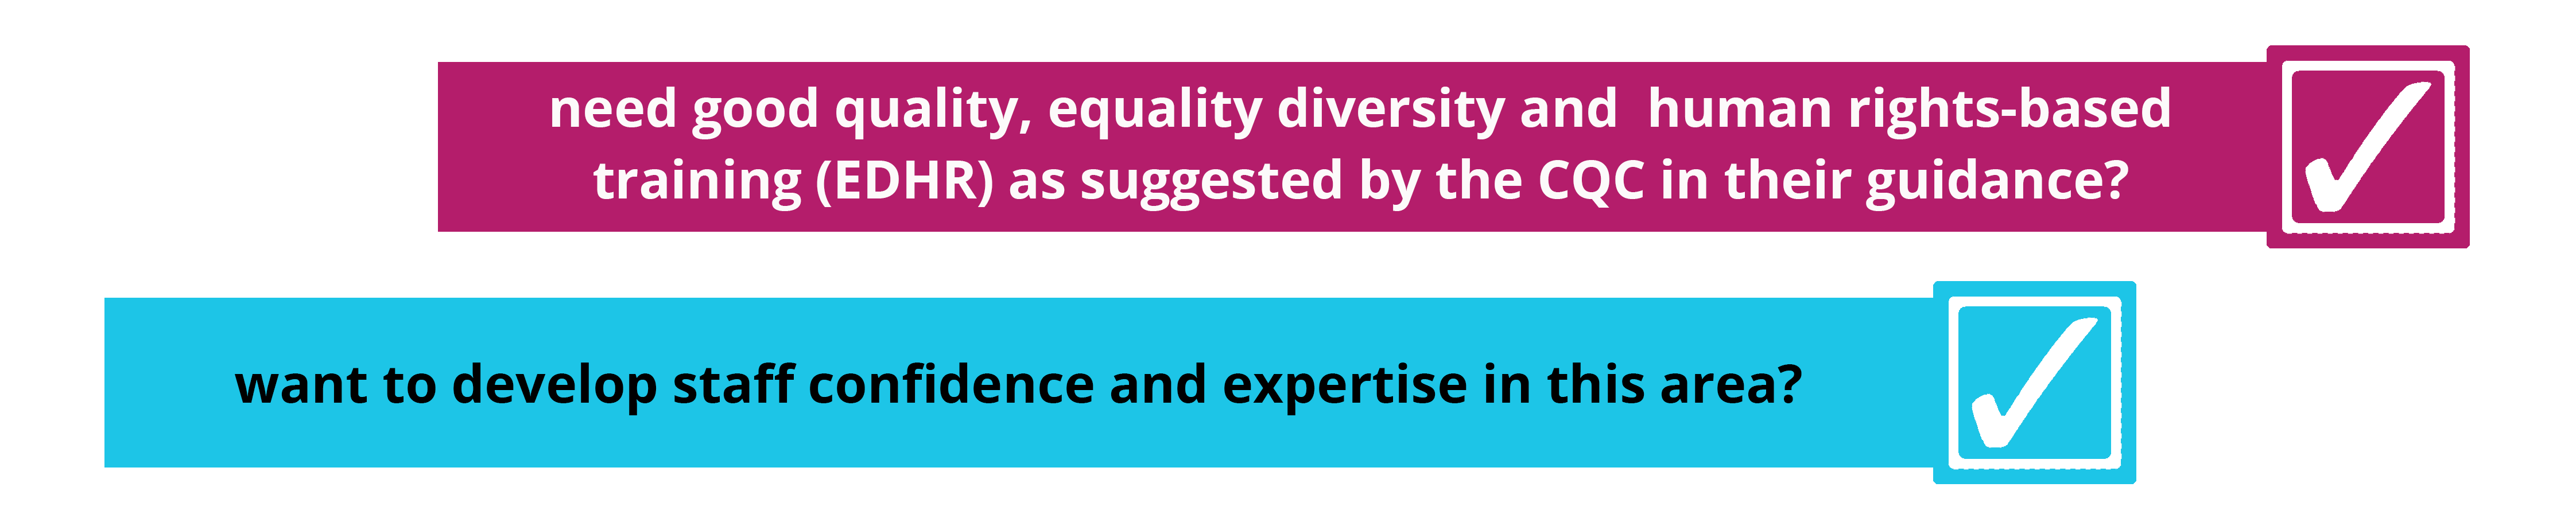 need good quality, equality diversity and human rights-based training (EDHR) as suggested by the CQC in their guidance? want to develop staff confidence and expertise in this area?